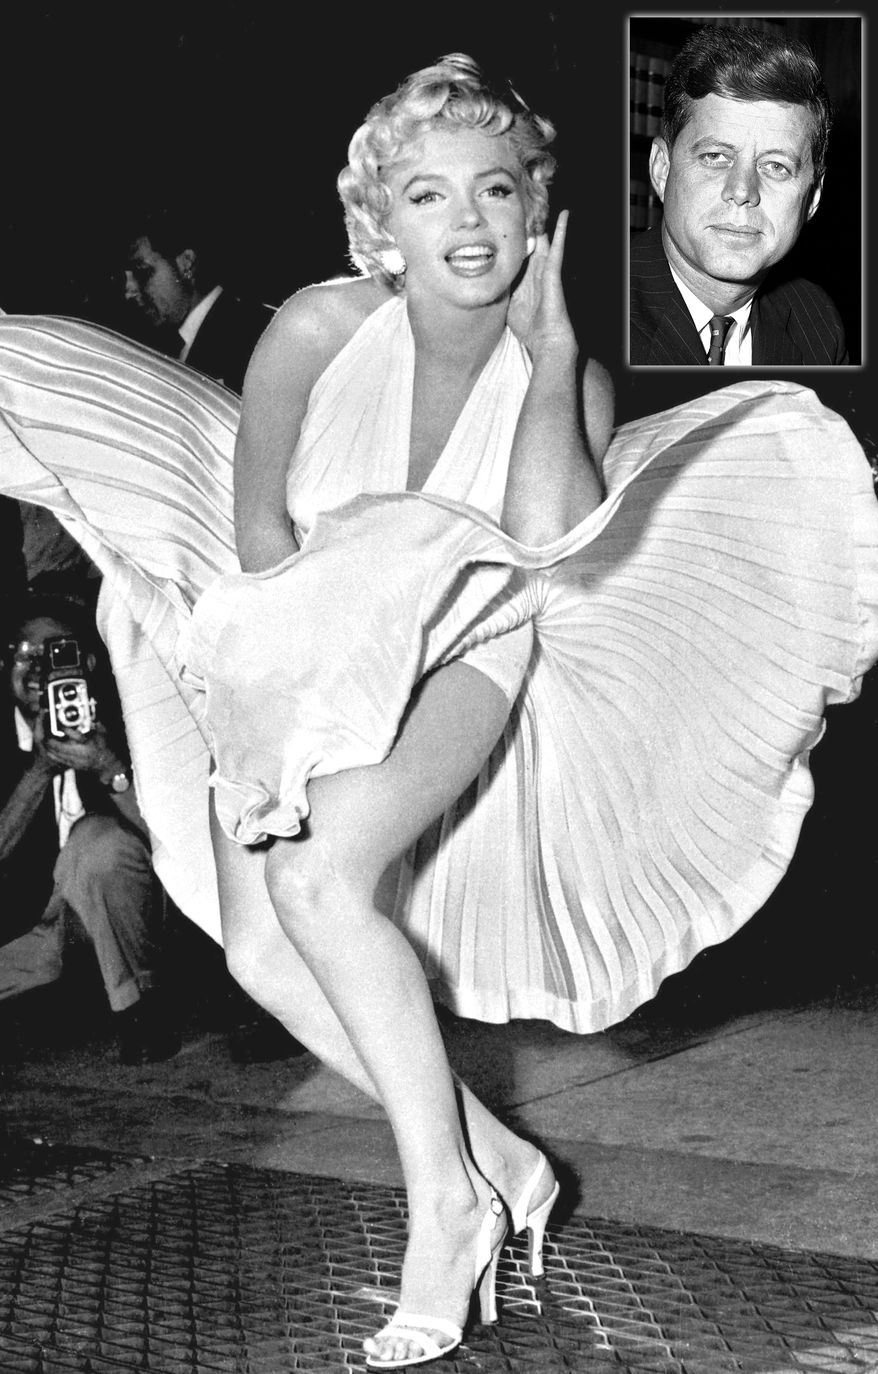 """PHOTO ILLUSTRATION President John F. Kennedy and Marilyn Monroe. Marilyn Monroe poses over the updraft of New York subway grating while in character for the filming of """"The Seven Year Itch"""" in Manhattan on September 9, 1954.  The former Norma Jean Baker modeled and starred in 28 movies grossing $200 million. Sensual and seductive, but with an air of innocence, Monroe became one of the world's most adored sex symbols. She died alone by suicide, at age 36 in her Hollywood bungalow.  (AP Photo/Matty Zimmerman)"""